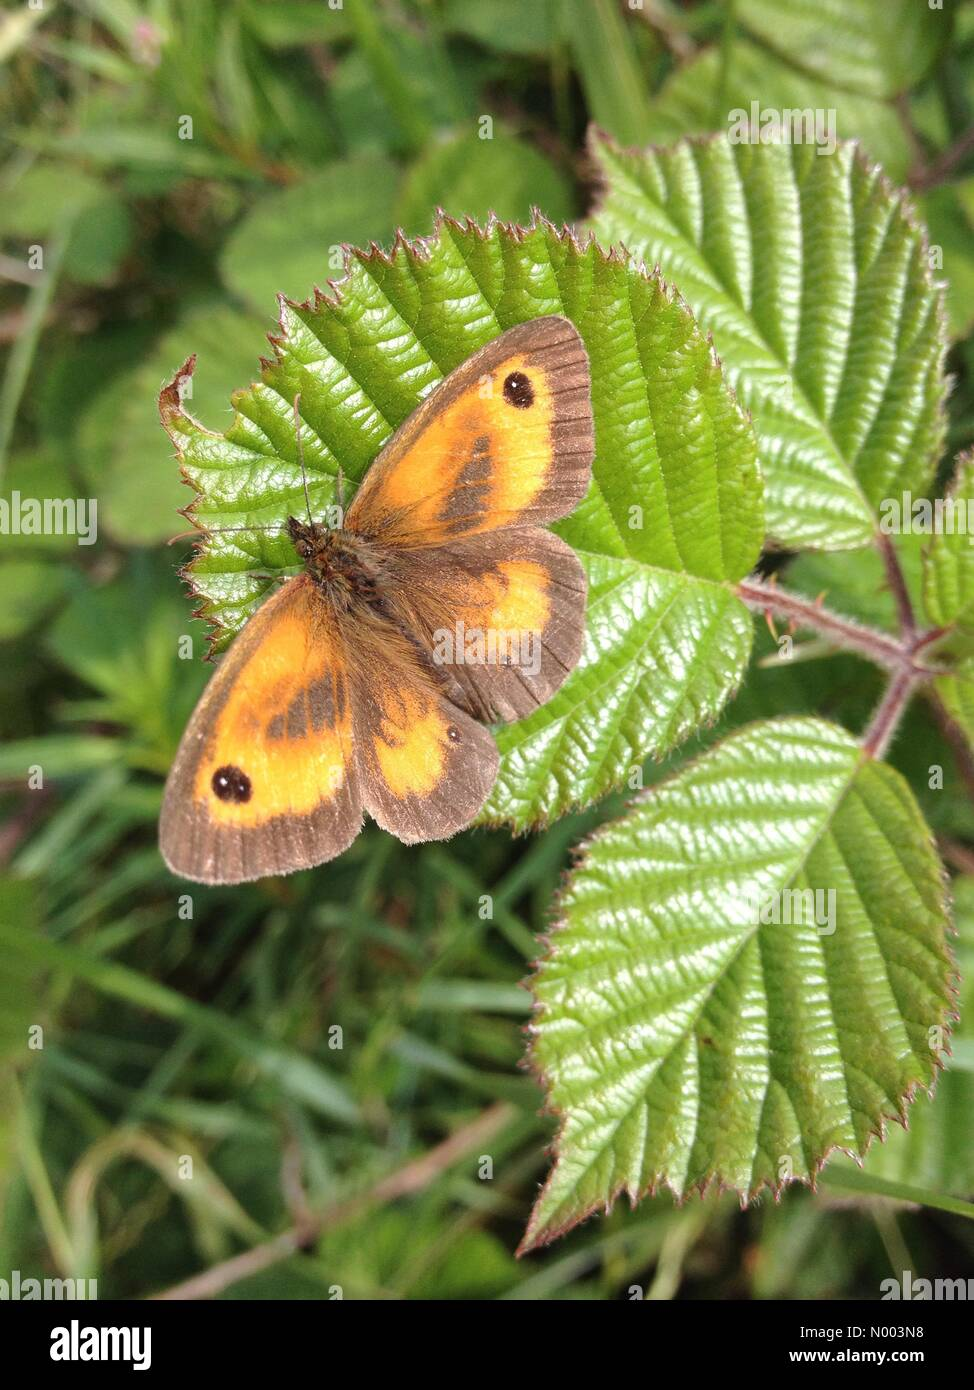 UK weather - insects in West Yorkshire. A sunny day in Leeds, West Yorkshire enticed the insects out. This gatekeeper - Stock Image